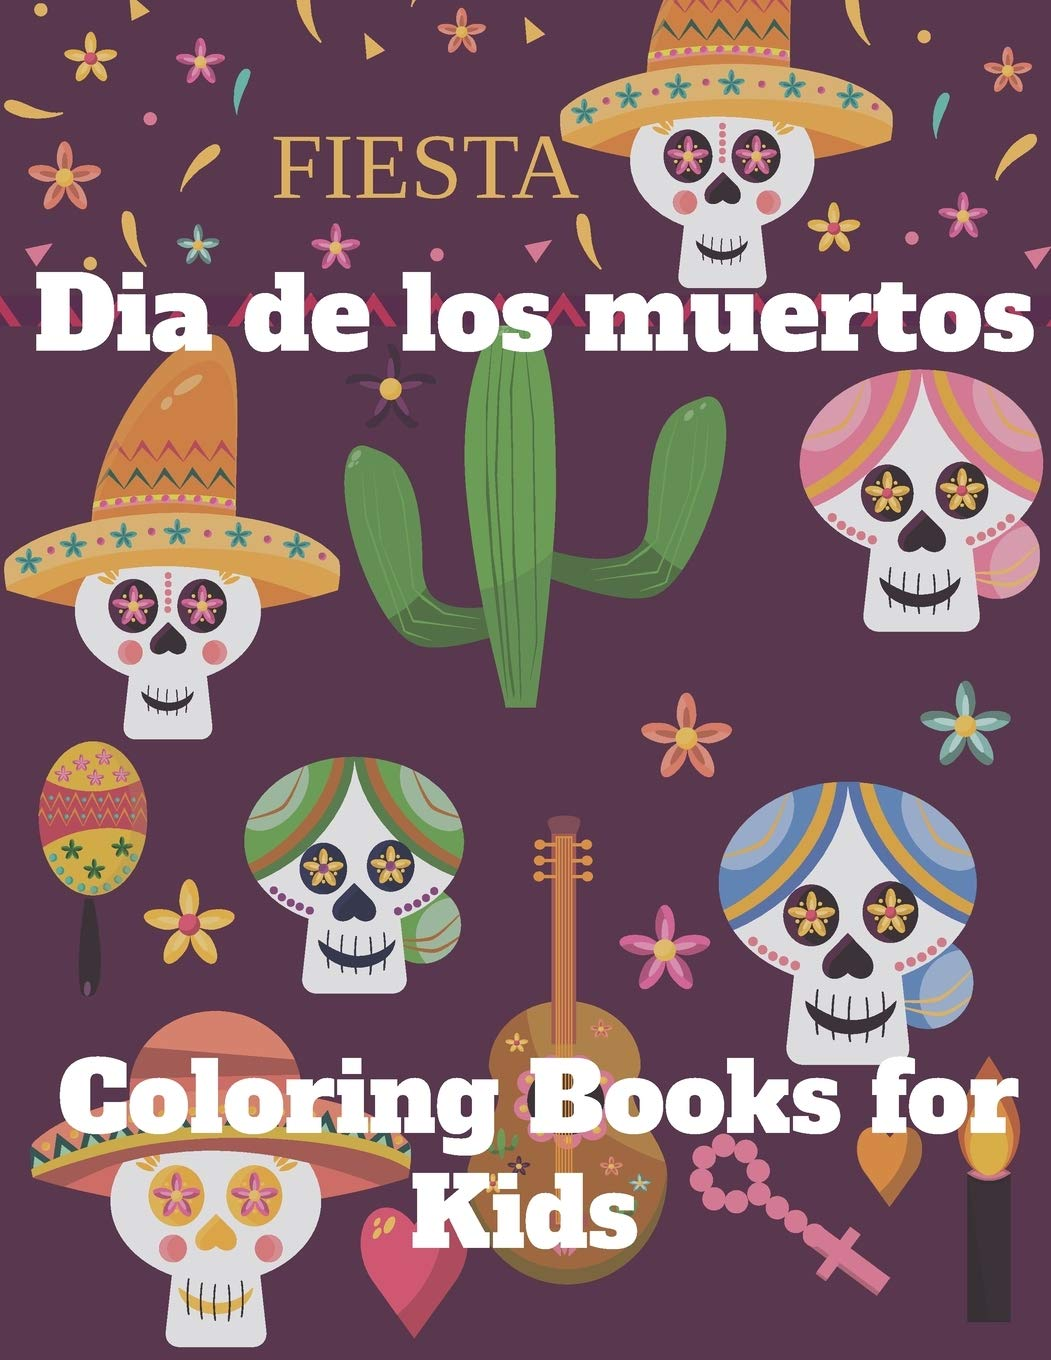 Dia De Los Muertos Coloring Books For Kids Fiesta Day Of The Dead Sugar Skulls Coloring Gift For Kids Boy Girls Justine Cara Weld 9798689458090 Books